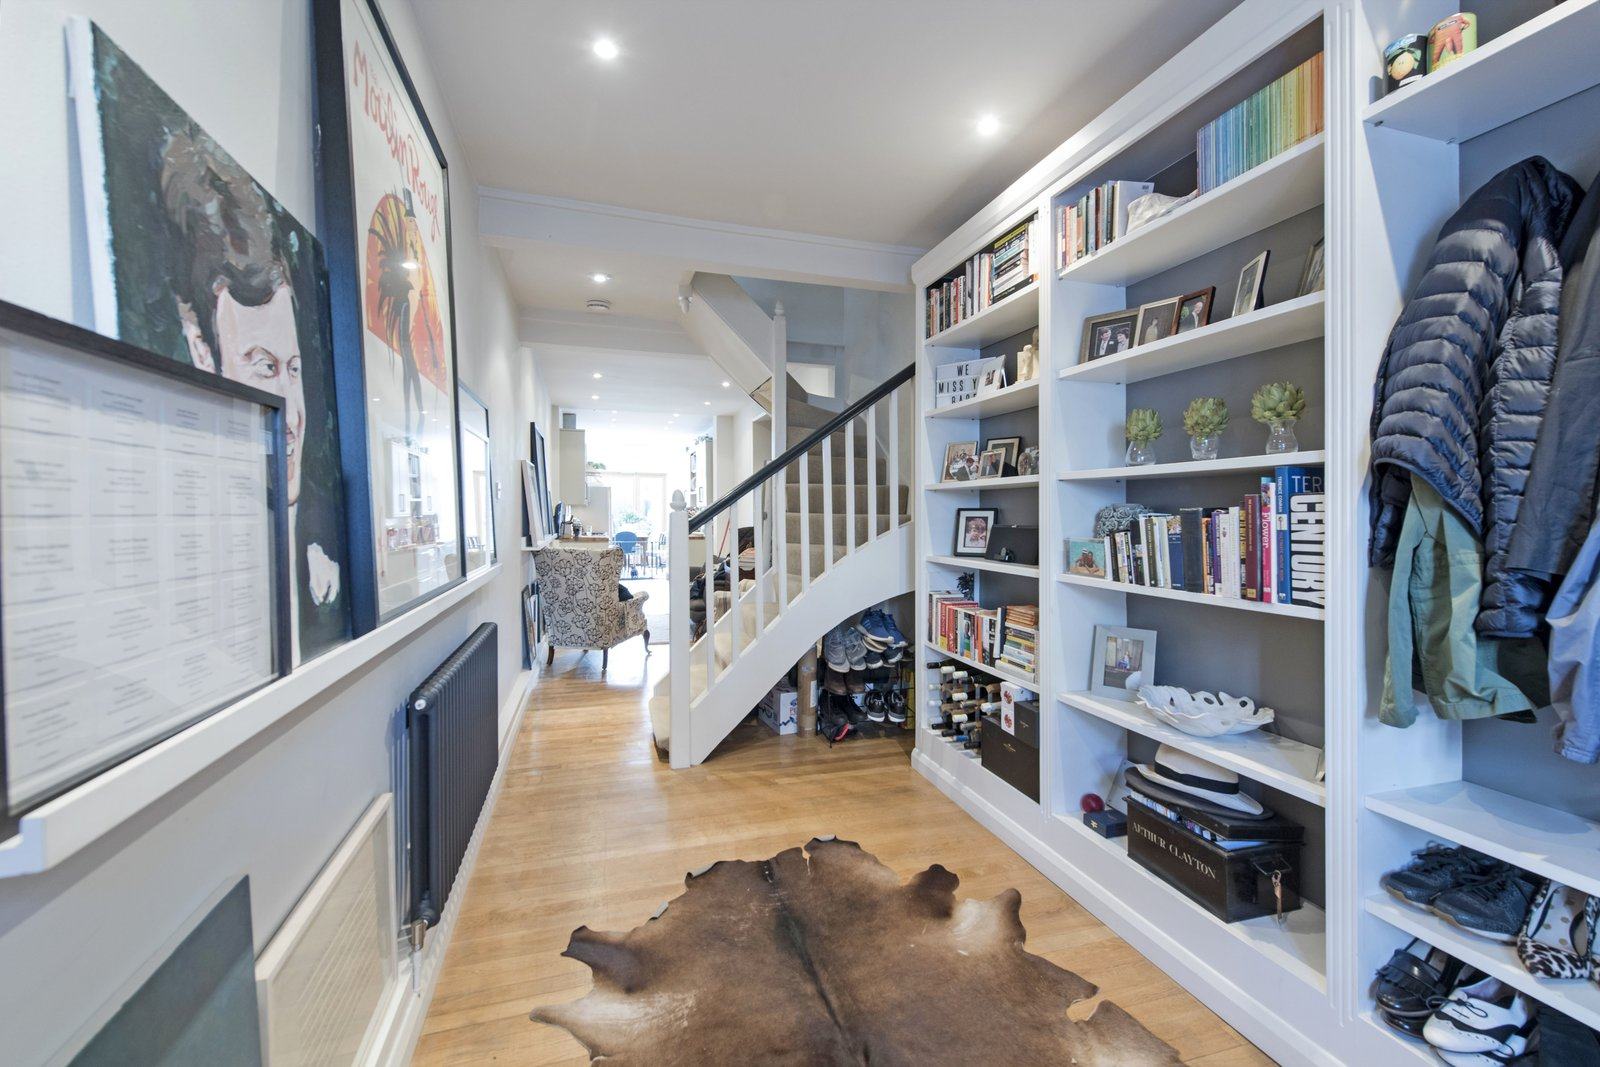 Storage Room and Shelves Storage Type It is possible to see the entire length of the house on the ground floor, increasing the feeling of light and space throughout the home.  Photo 3 of 11 in A Super Skinny London Home Hits the Market at £1M